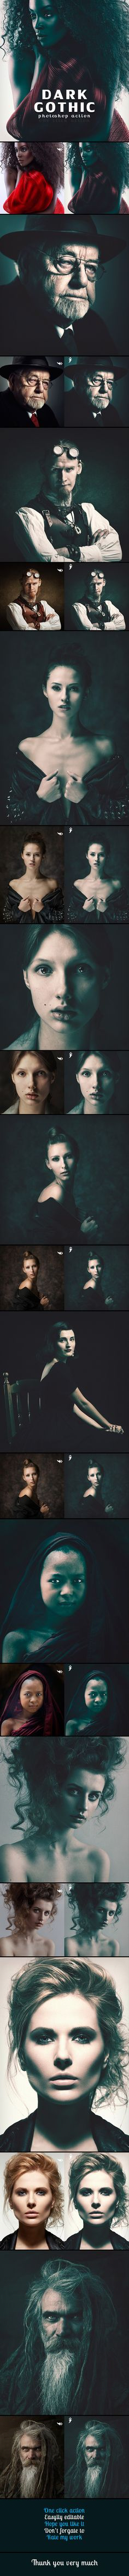 Dark Gothic Photoshop Action #photoeffect Download…